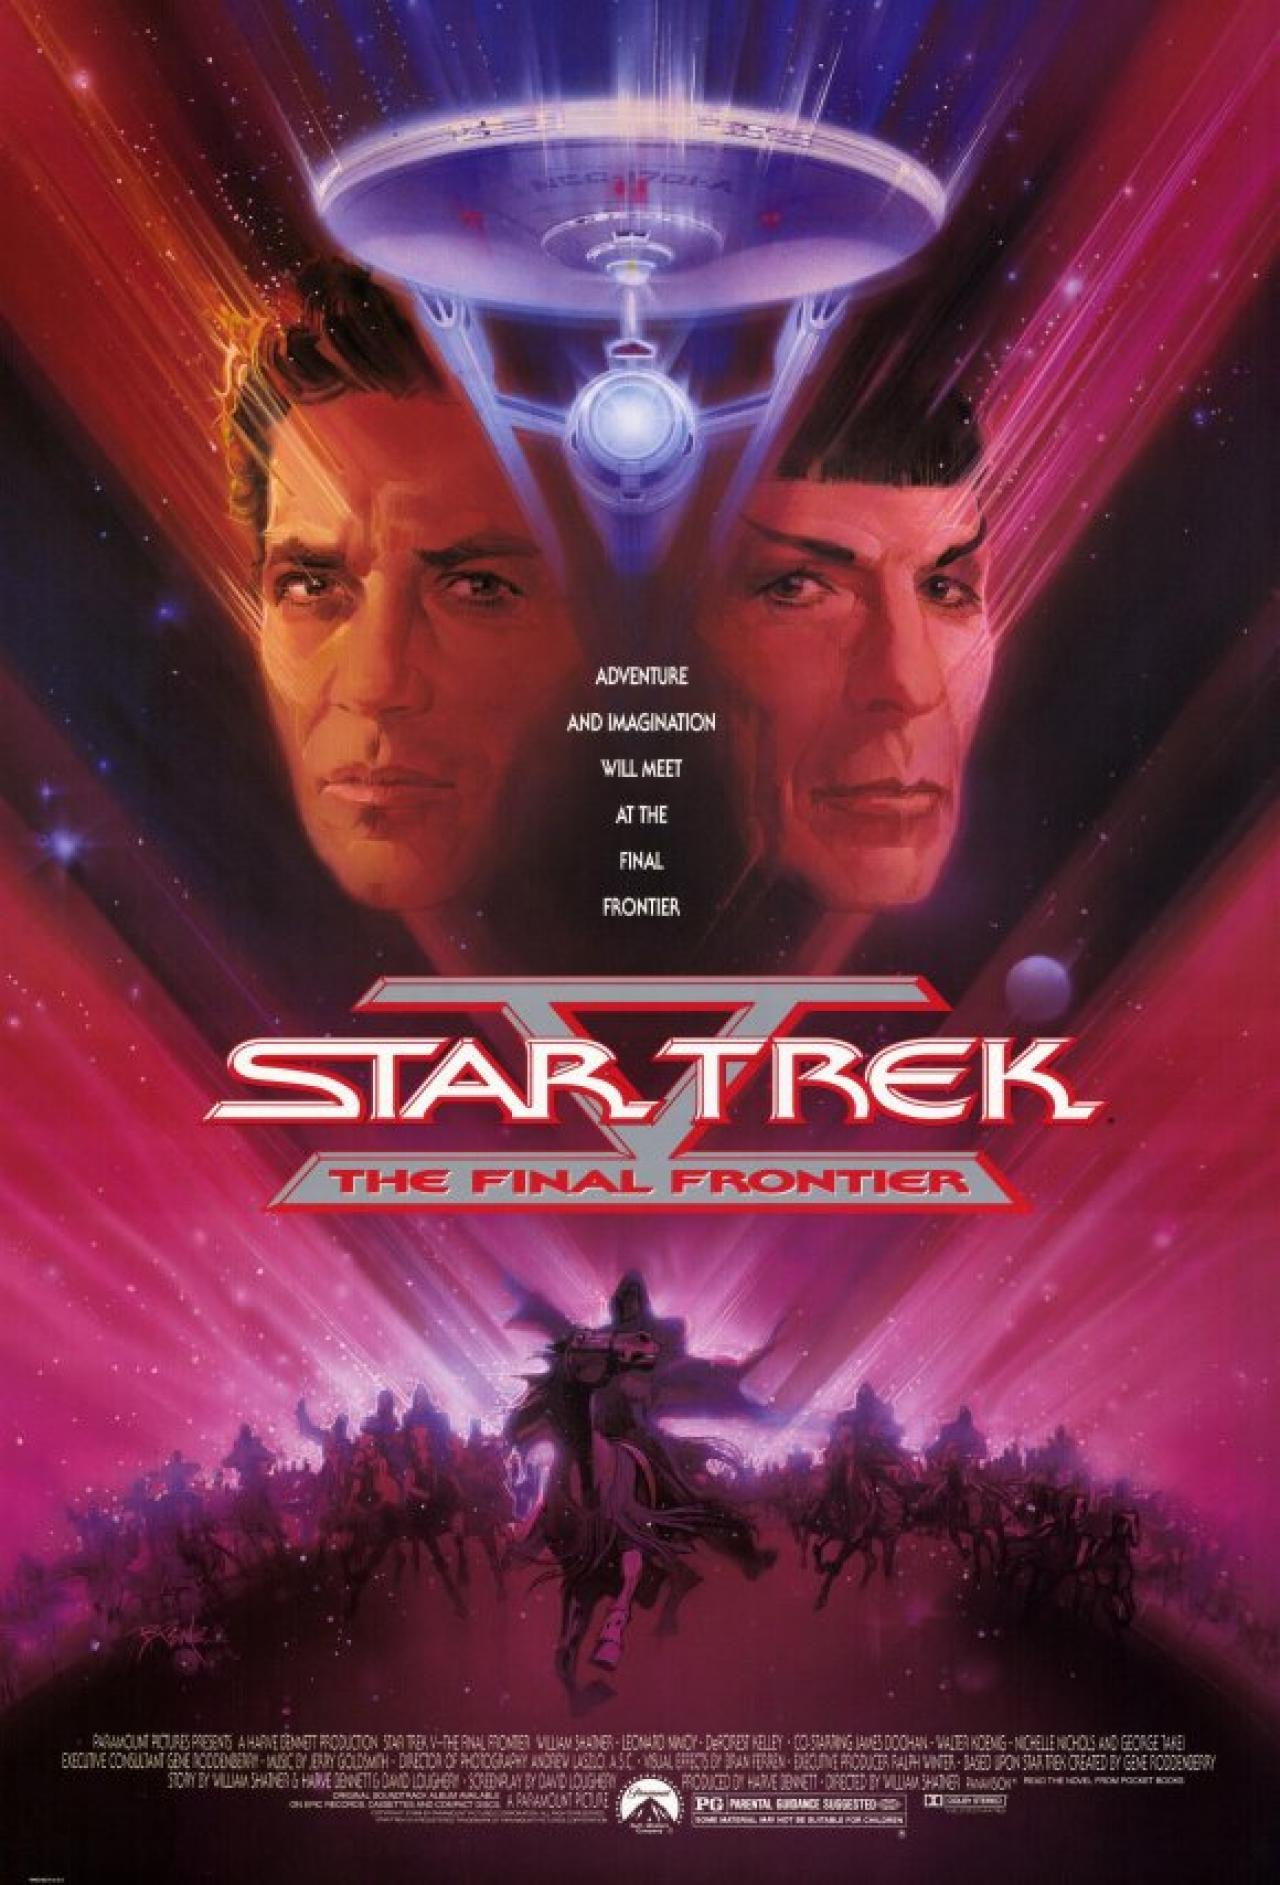 Star Trek V: The Final Frontier (1989) Technical Specifications